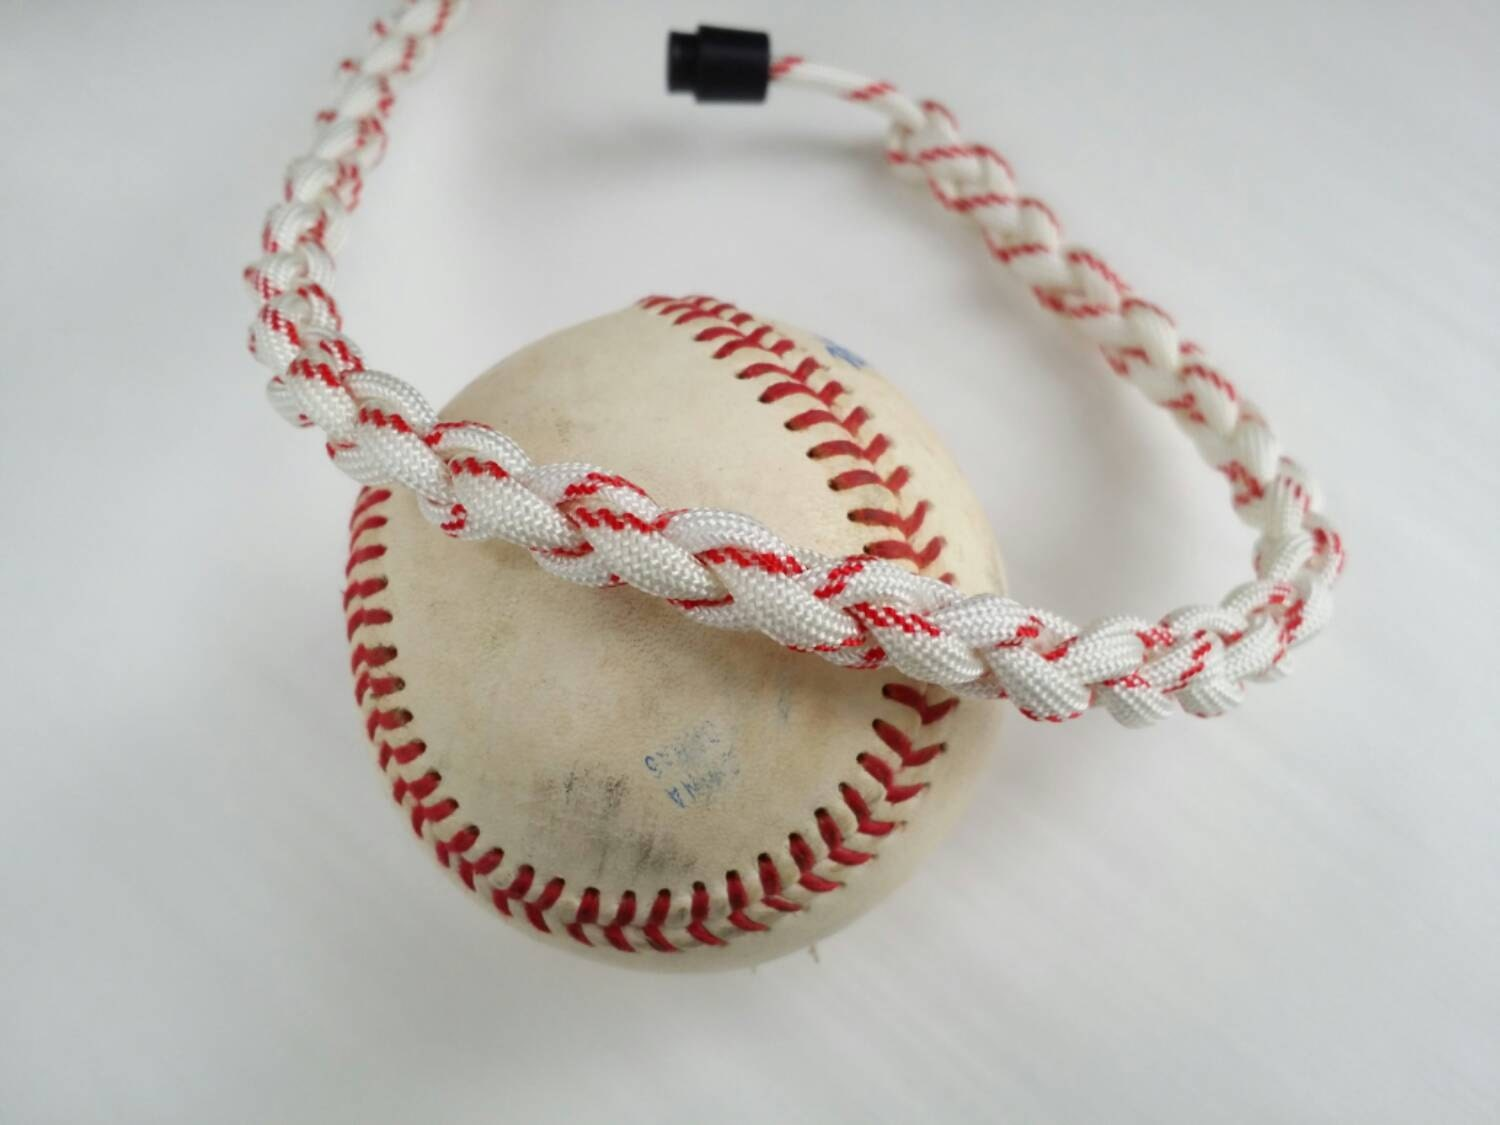 necklace pendant women heart products i league fan gift little shopping softball player baseball jewelry love skyrim